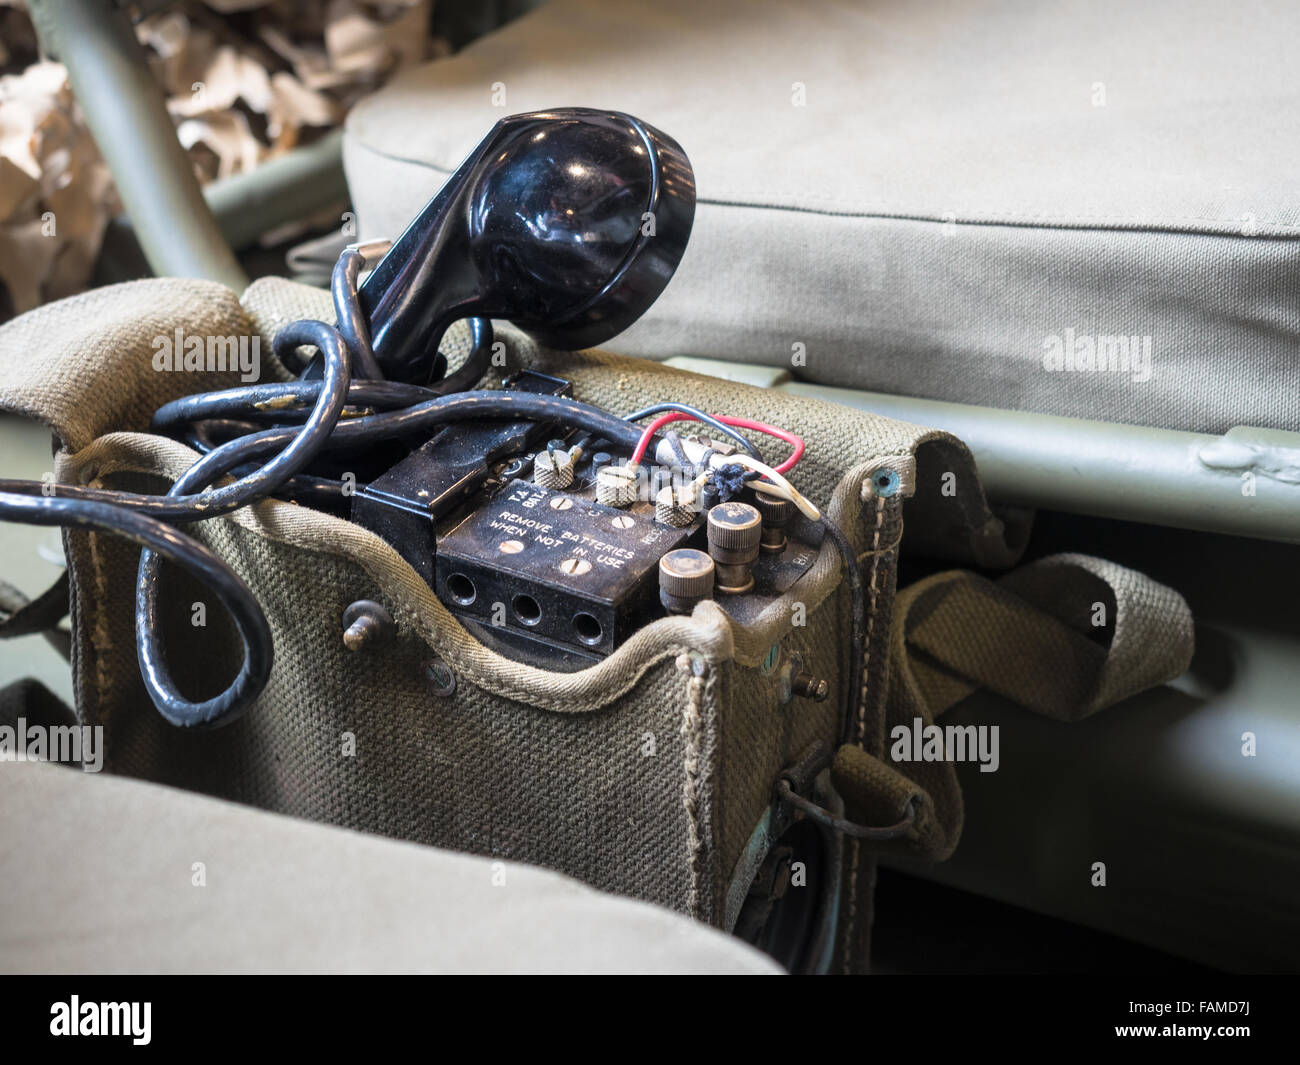 Radio Telephone portable equipped on US military jeep during World War II. - Stock Image